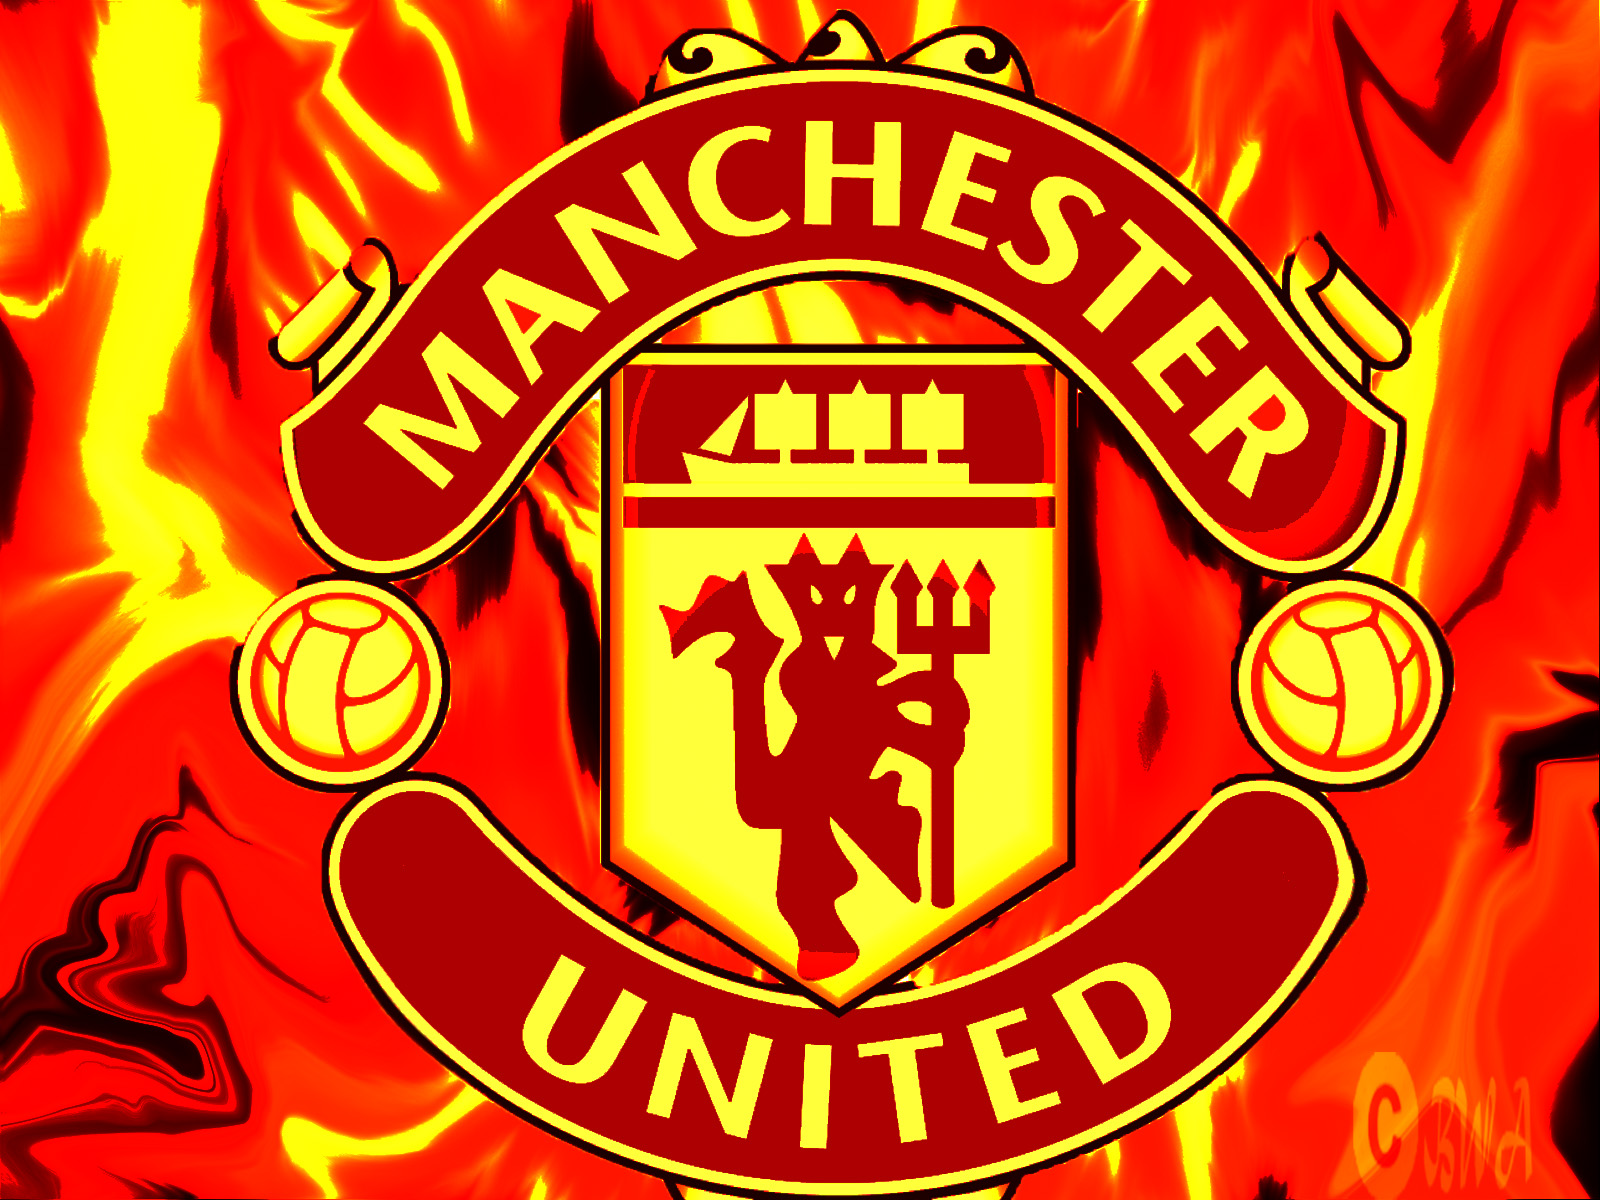 Football: Manchester United Logo 2013 HD Wallpapers